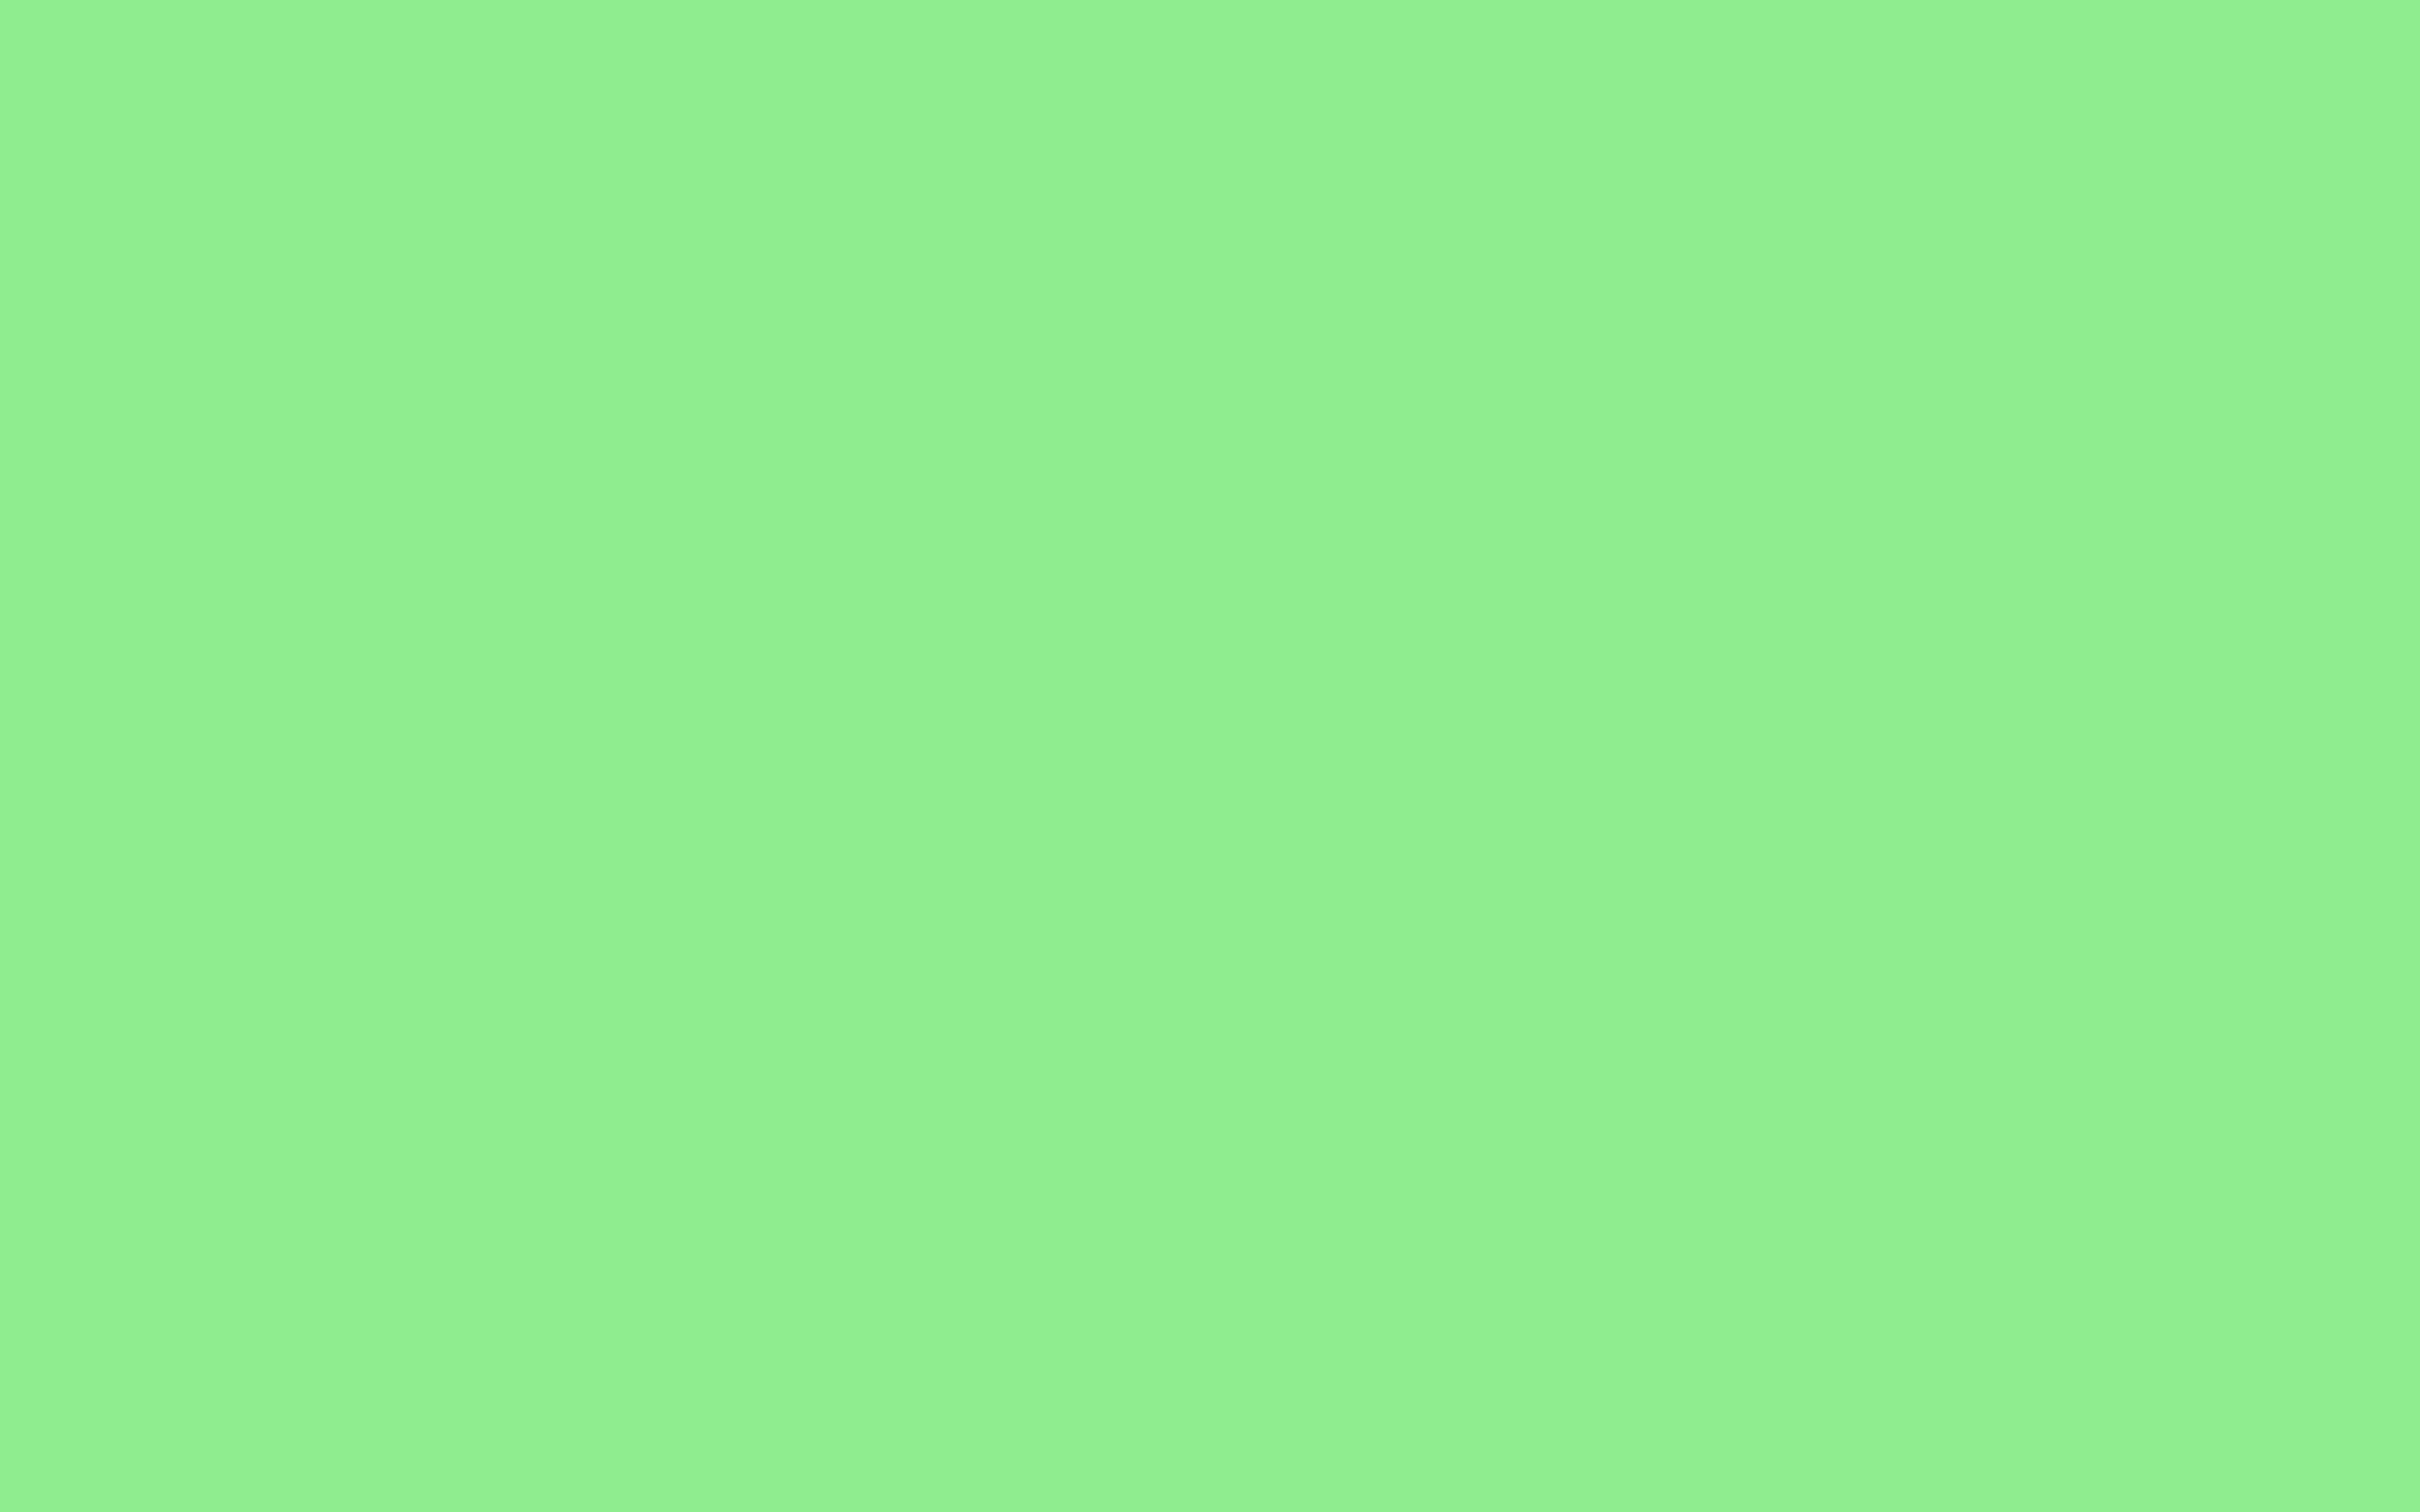 Light green color background images 2560x1600